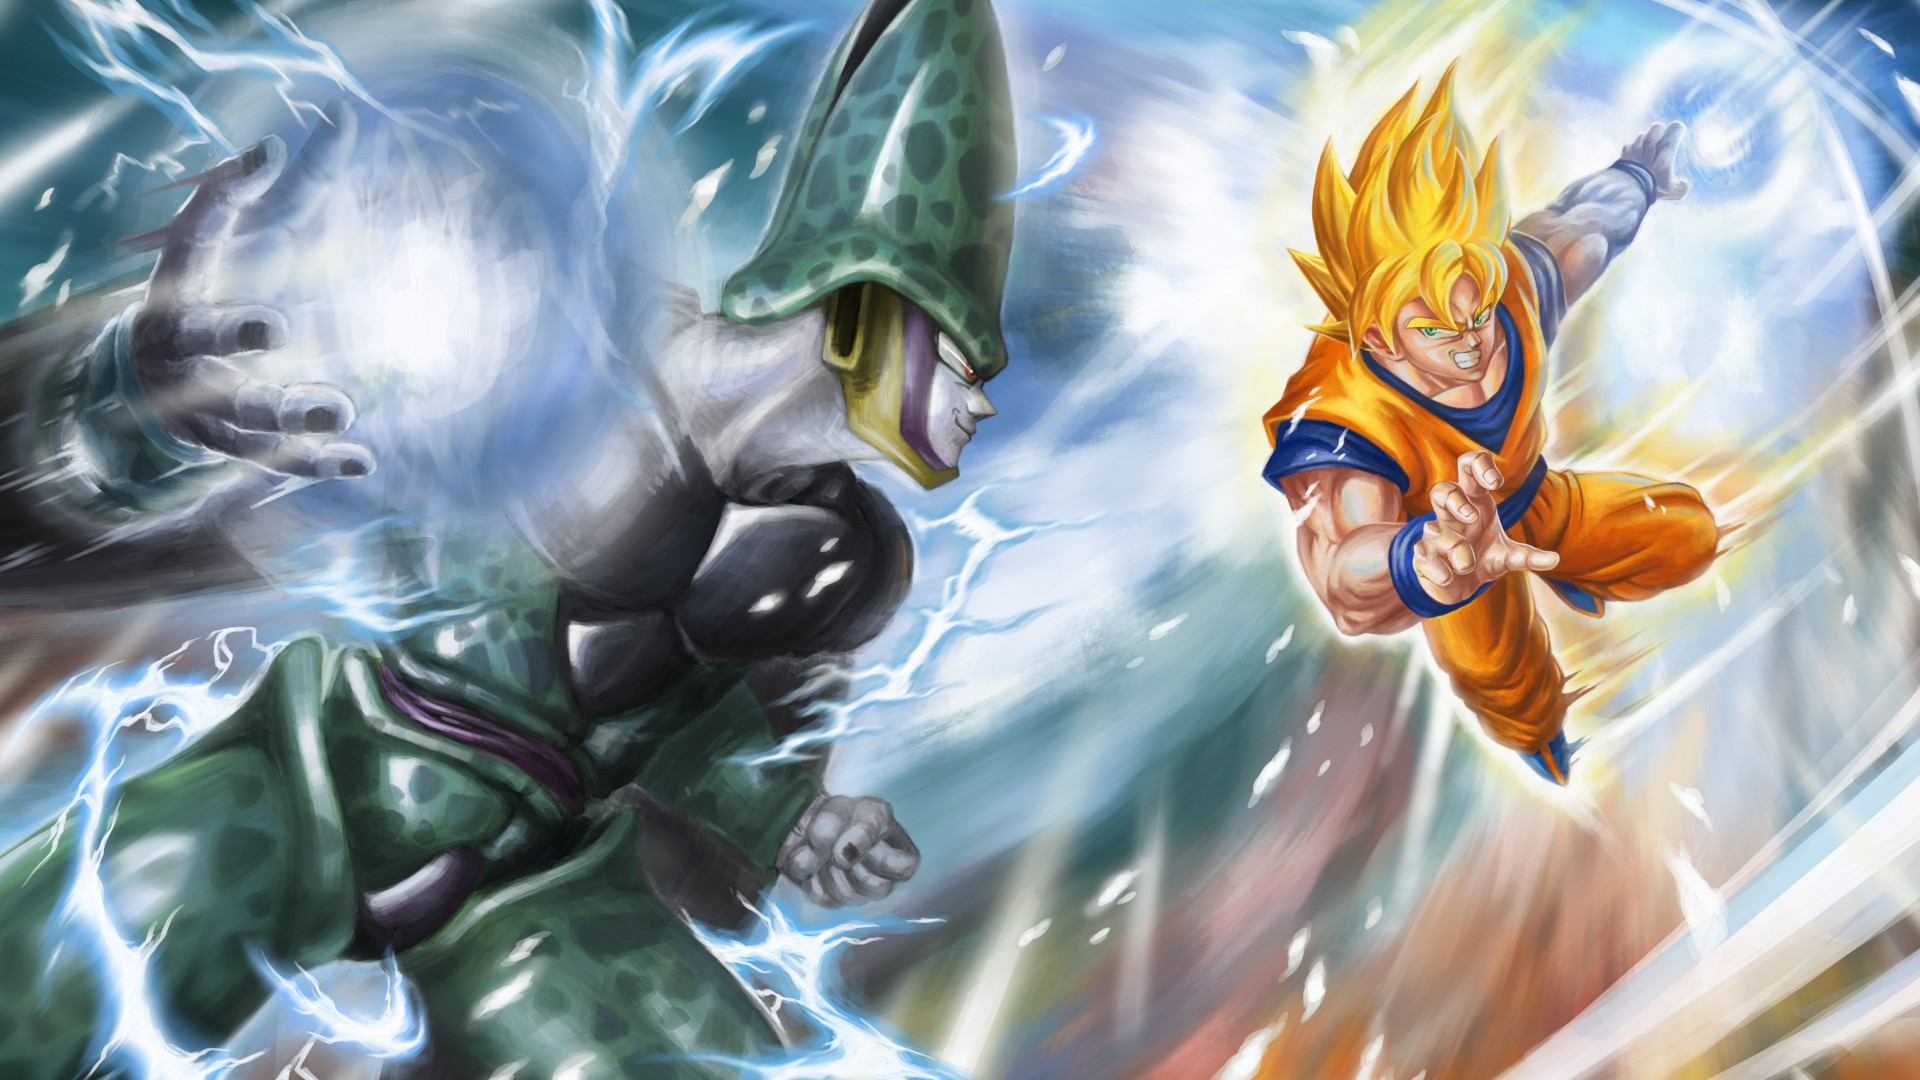 Dragon Ball Z Wallpaper for PC Full HD Pictures 1920x1080